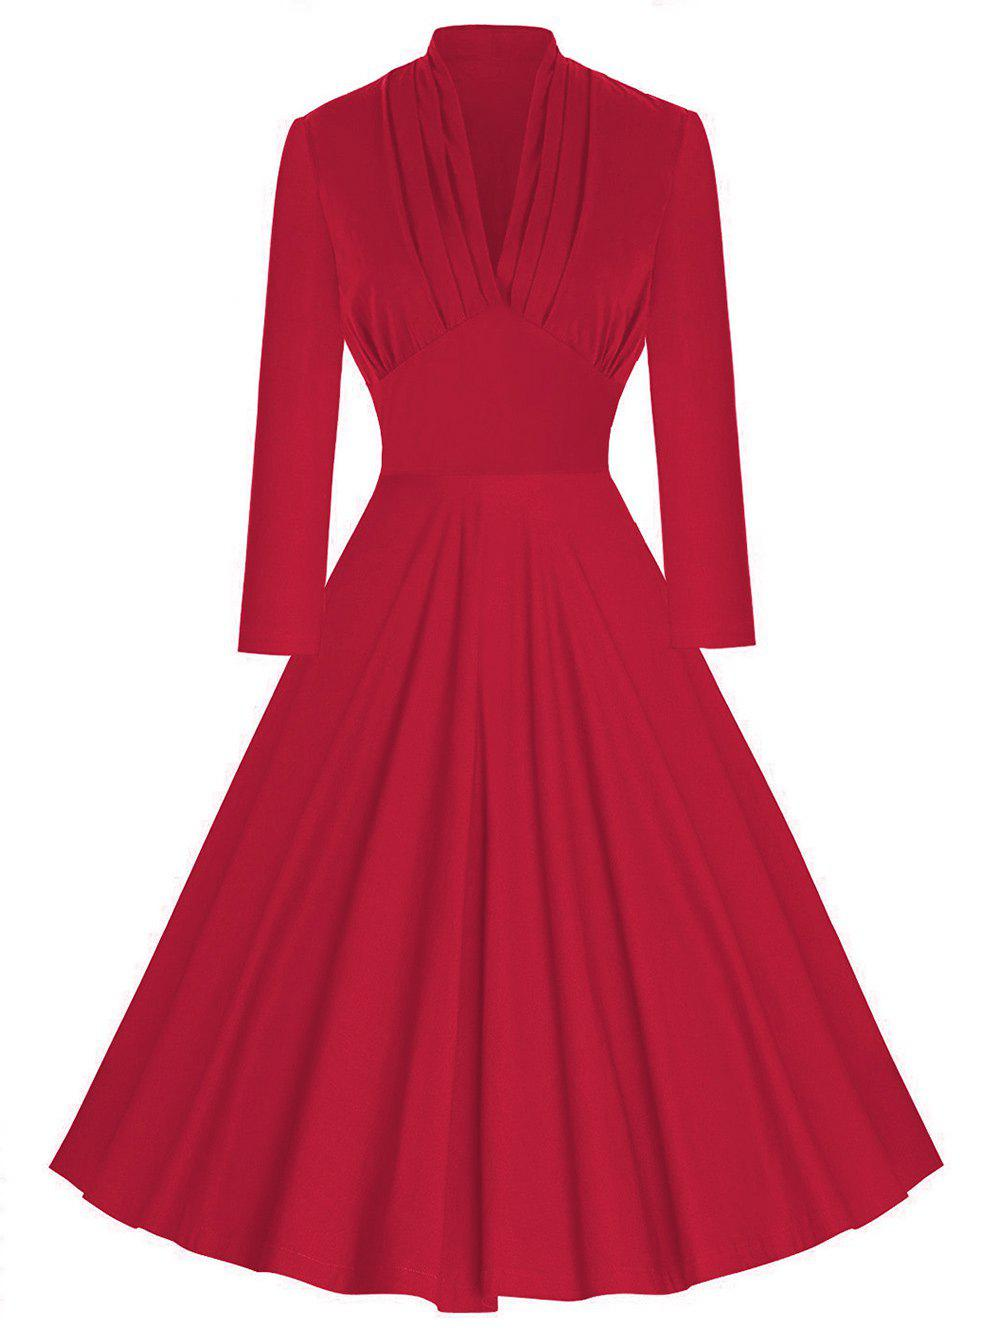 Vintage Pleated Plunging Empire Waist DressWOMEN<br><br>Size: XL; Color: RED; Style: Vintage; Material: Polyester; Silhouette: A-Line; Dresses Length: Knee-Length; Neckline: Plunging Neck; Sleeve Length: Long Sleeves; Waist: Empire; Embellishment: Pleated; Pattern Type: Solid Color; With Belt: No; Season: Fall,Spring; Weight: 0.4000kg; Package Contents: 1 x Dress;